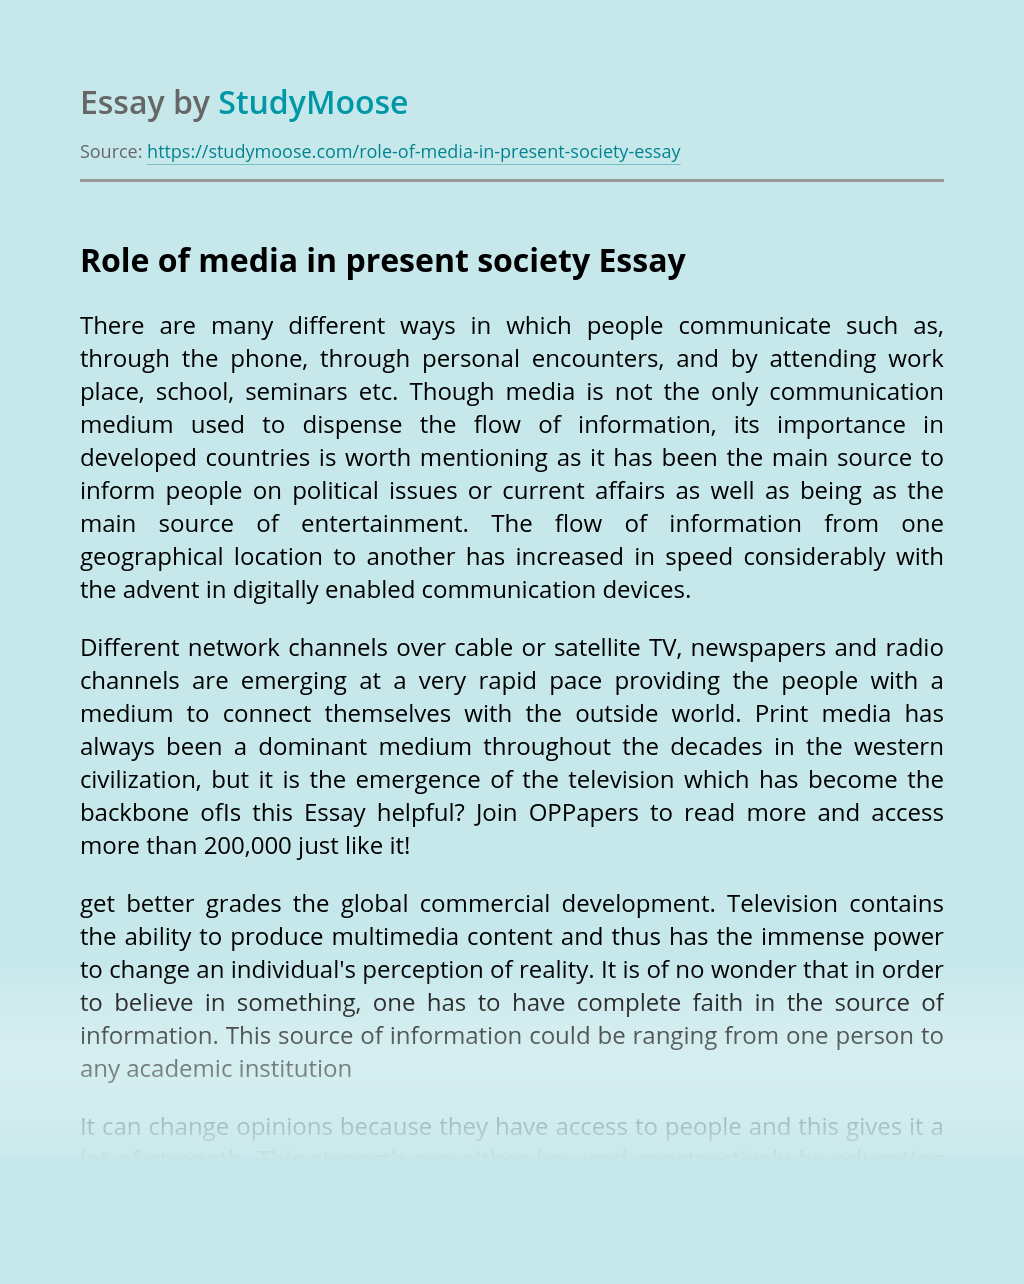 Role of media in present society